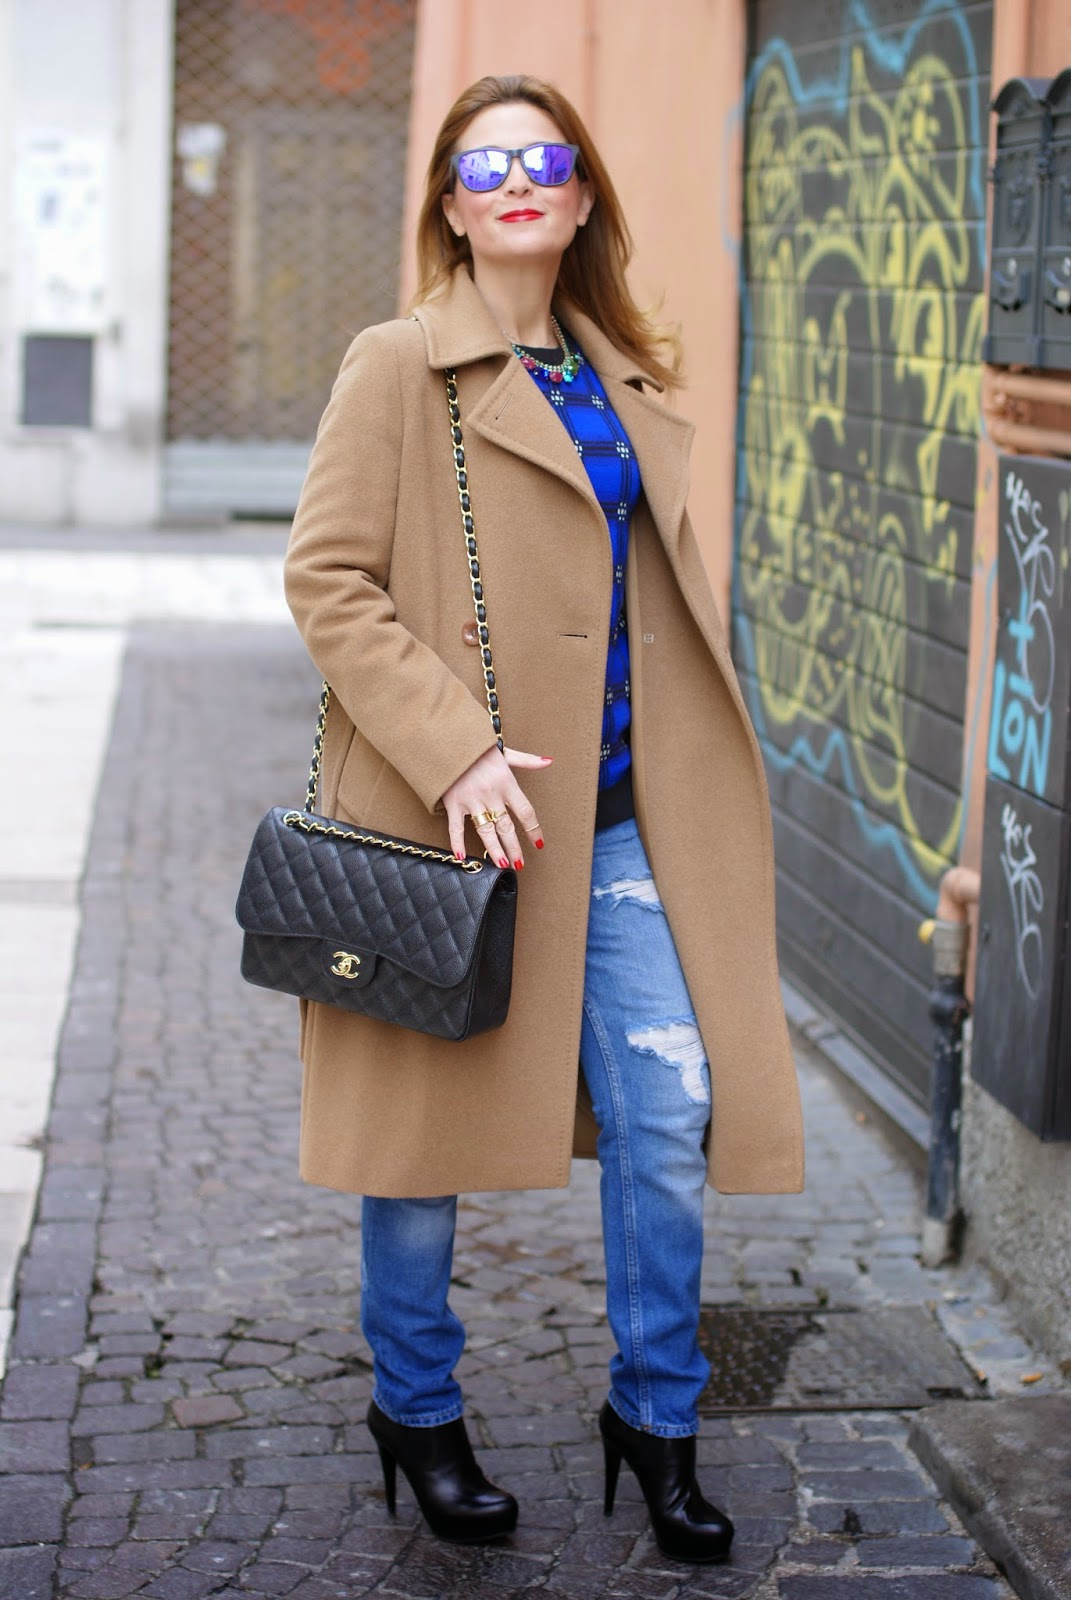 2c43dc4d0b84d2 Max Mara camel belted coat   Fashion and Cookies   Bloglovin'